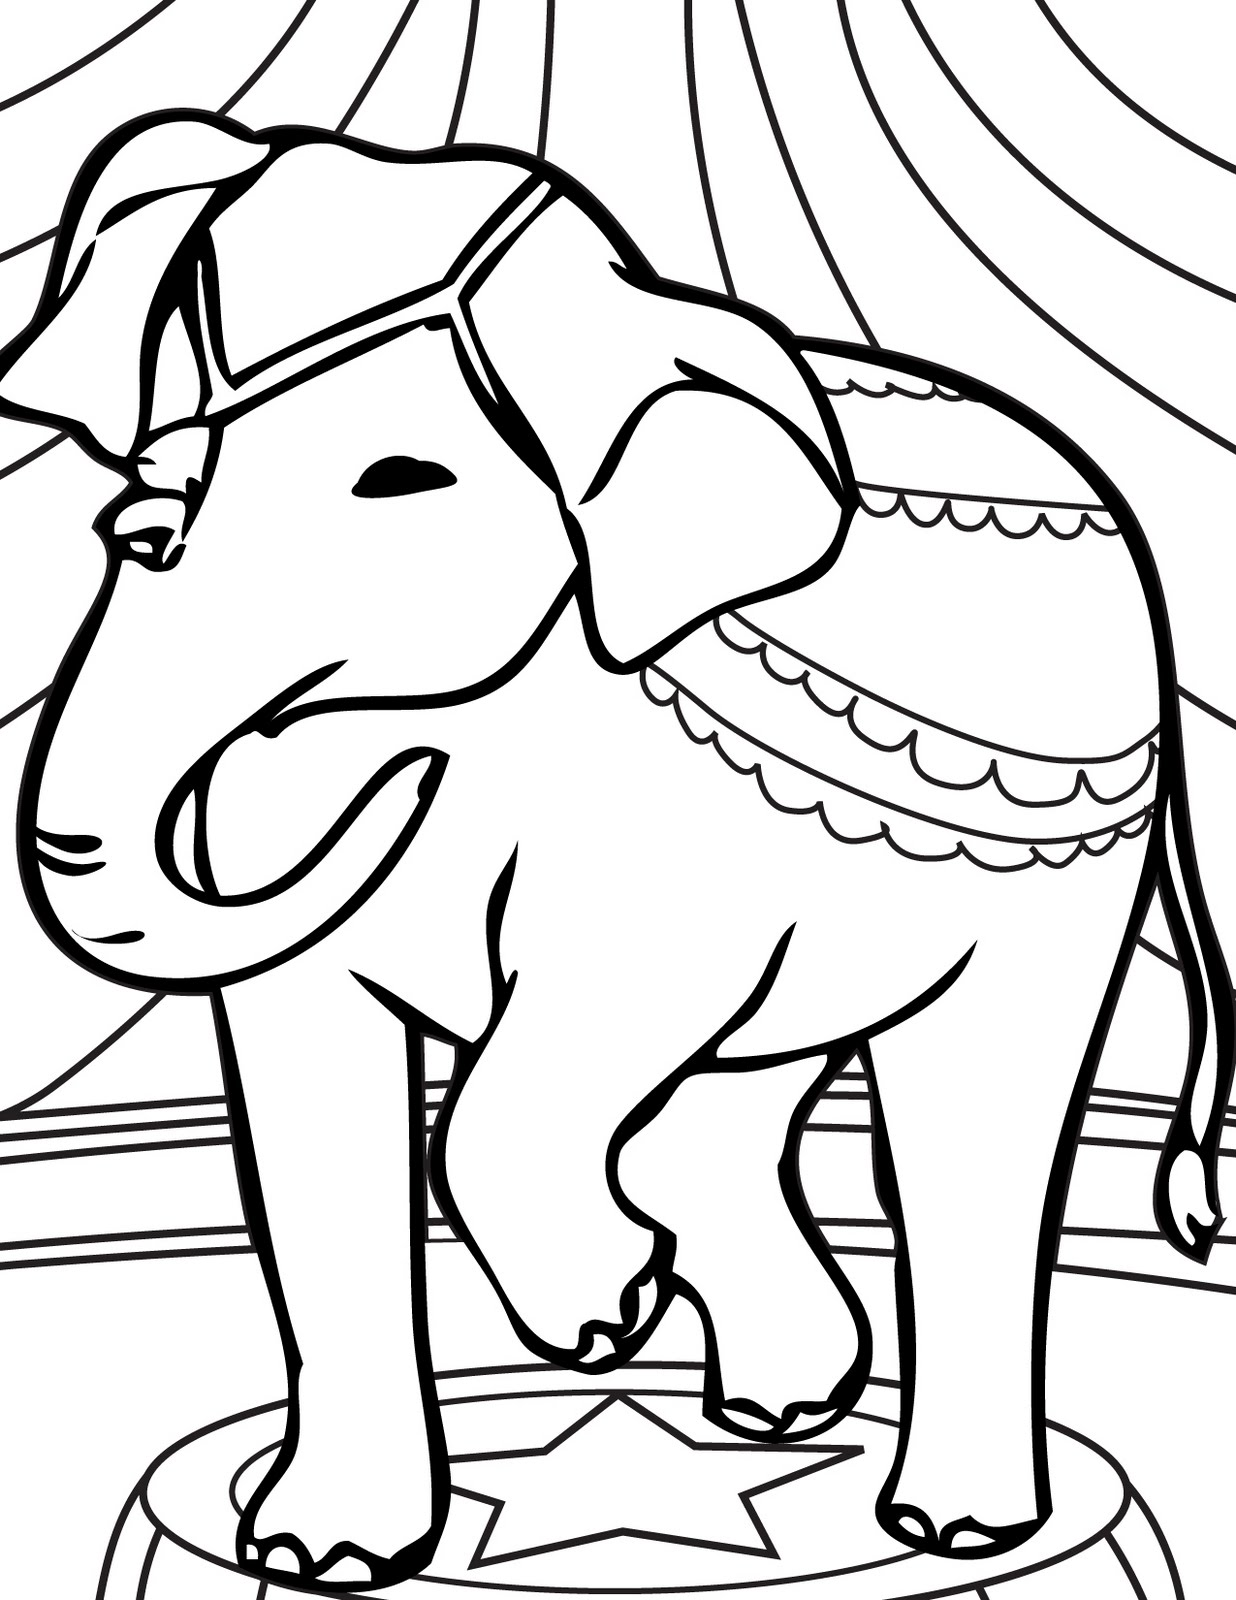 Circus Elephant Coloring Pages Clipart Panda Free Clipart Images